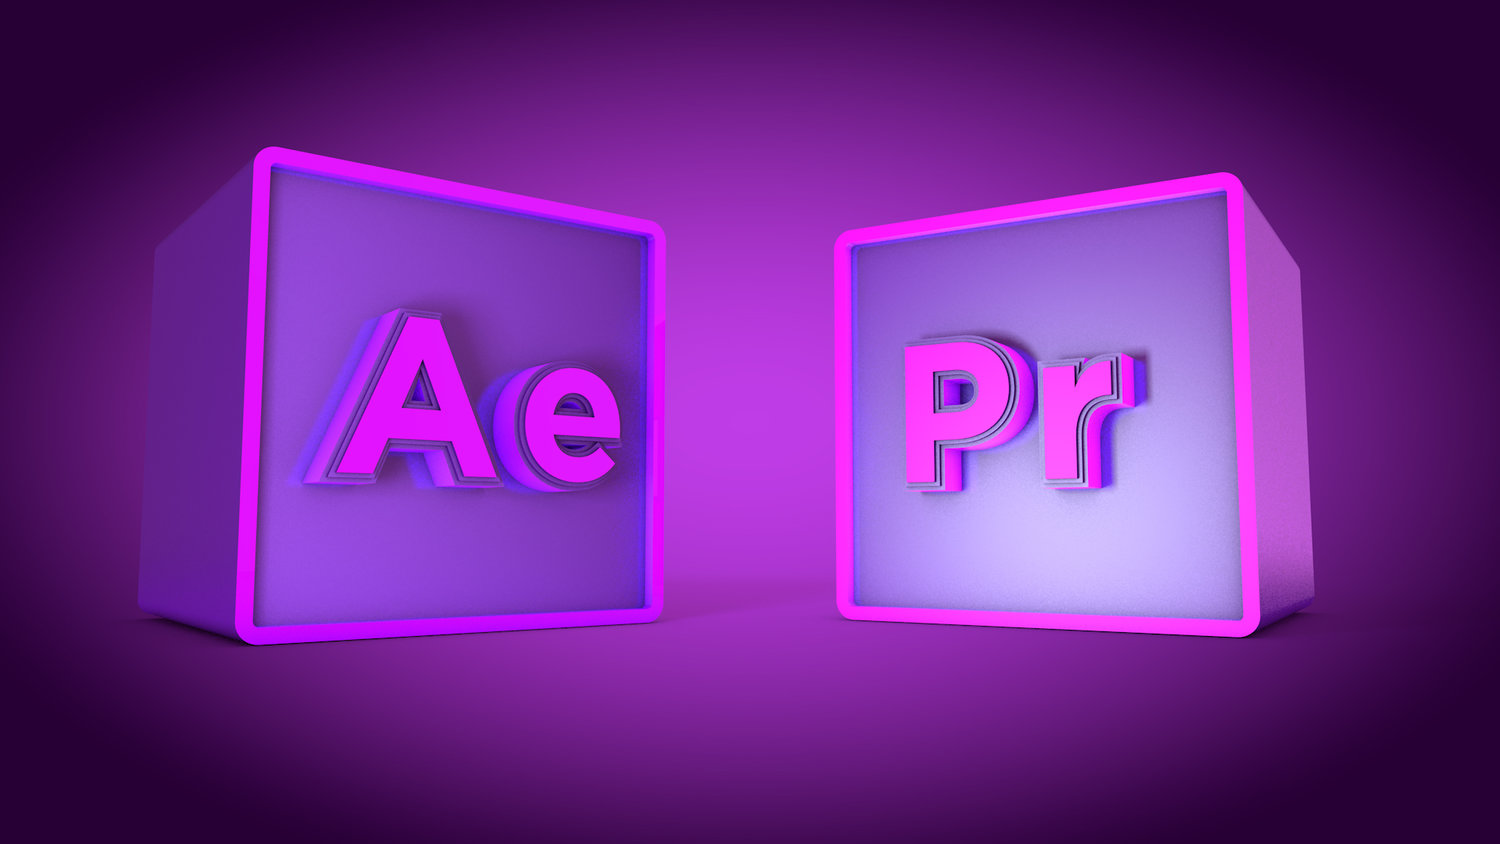 Cinema D After Effects And Adobe CC Tutorials Motion Tutorials - After effects list template